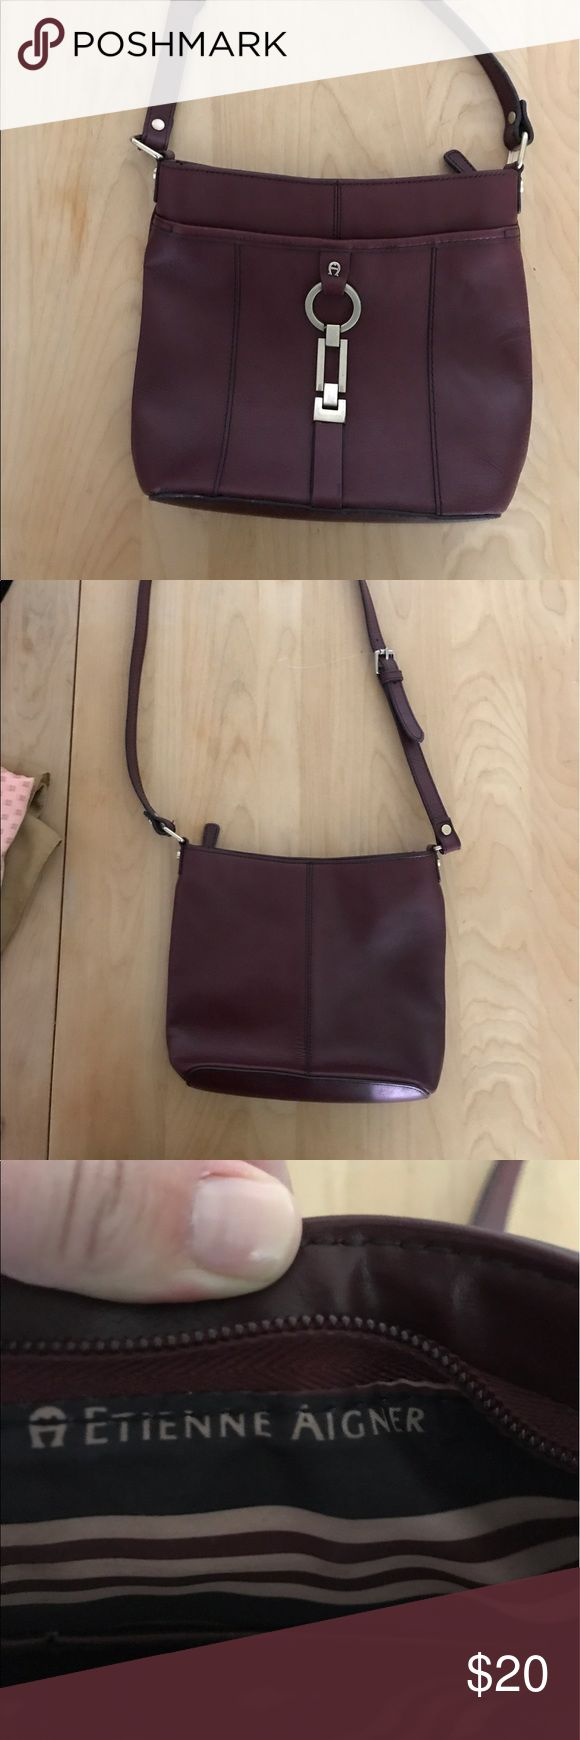 Burgundy crossover purse Entienne Aigner Good size crossover bag! Good used condition! Etienne Aigner Bags Crossbody Bags